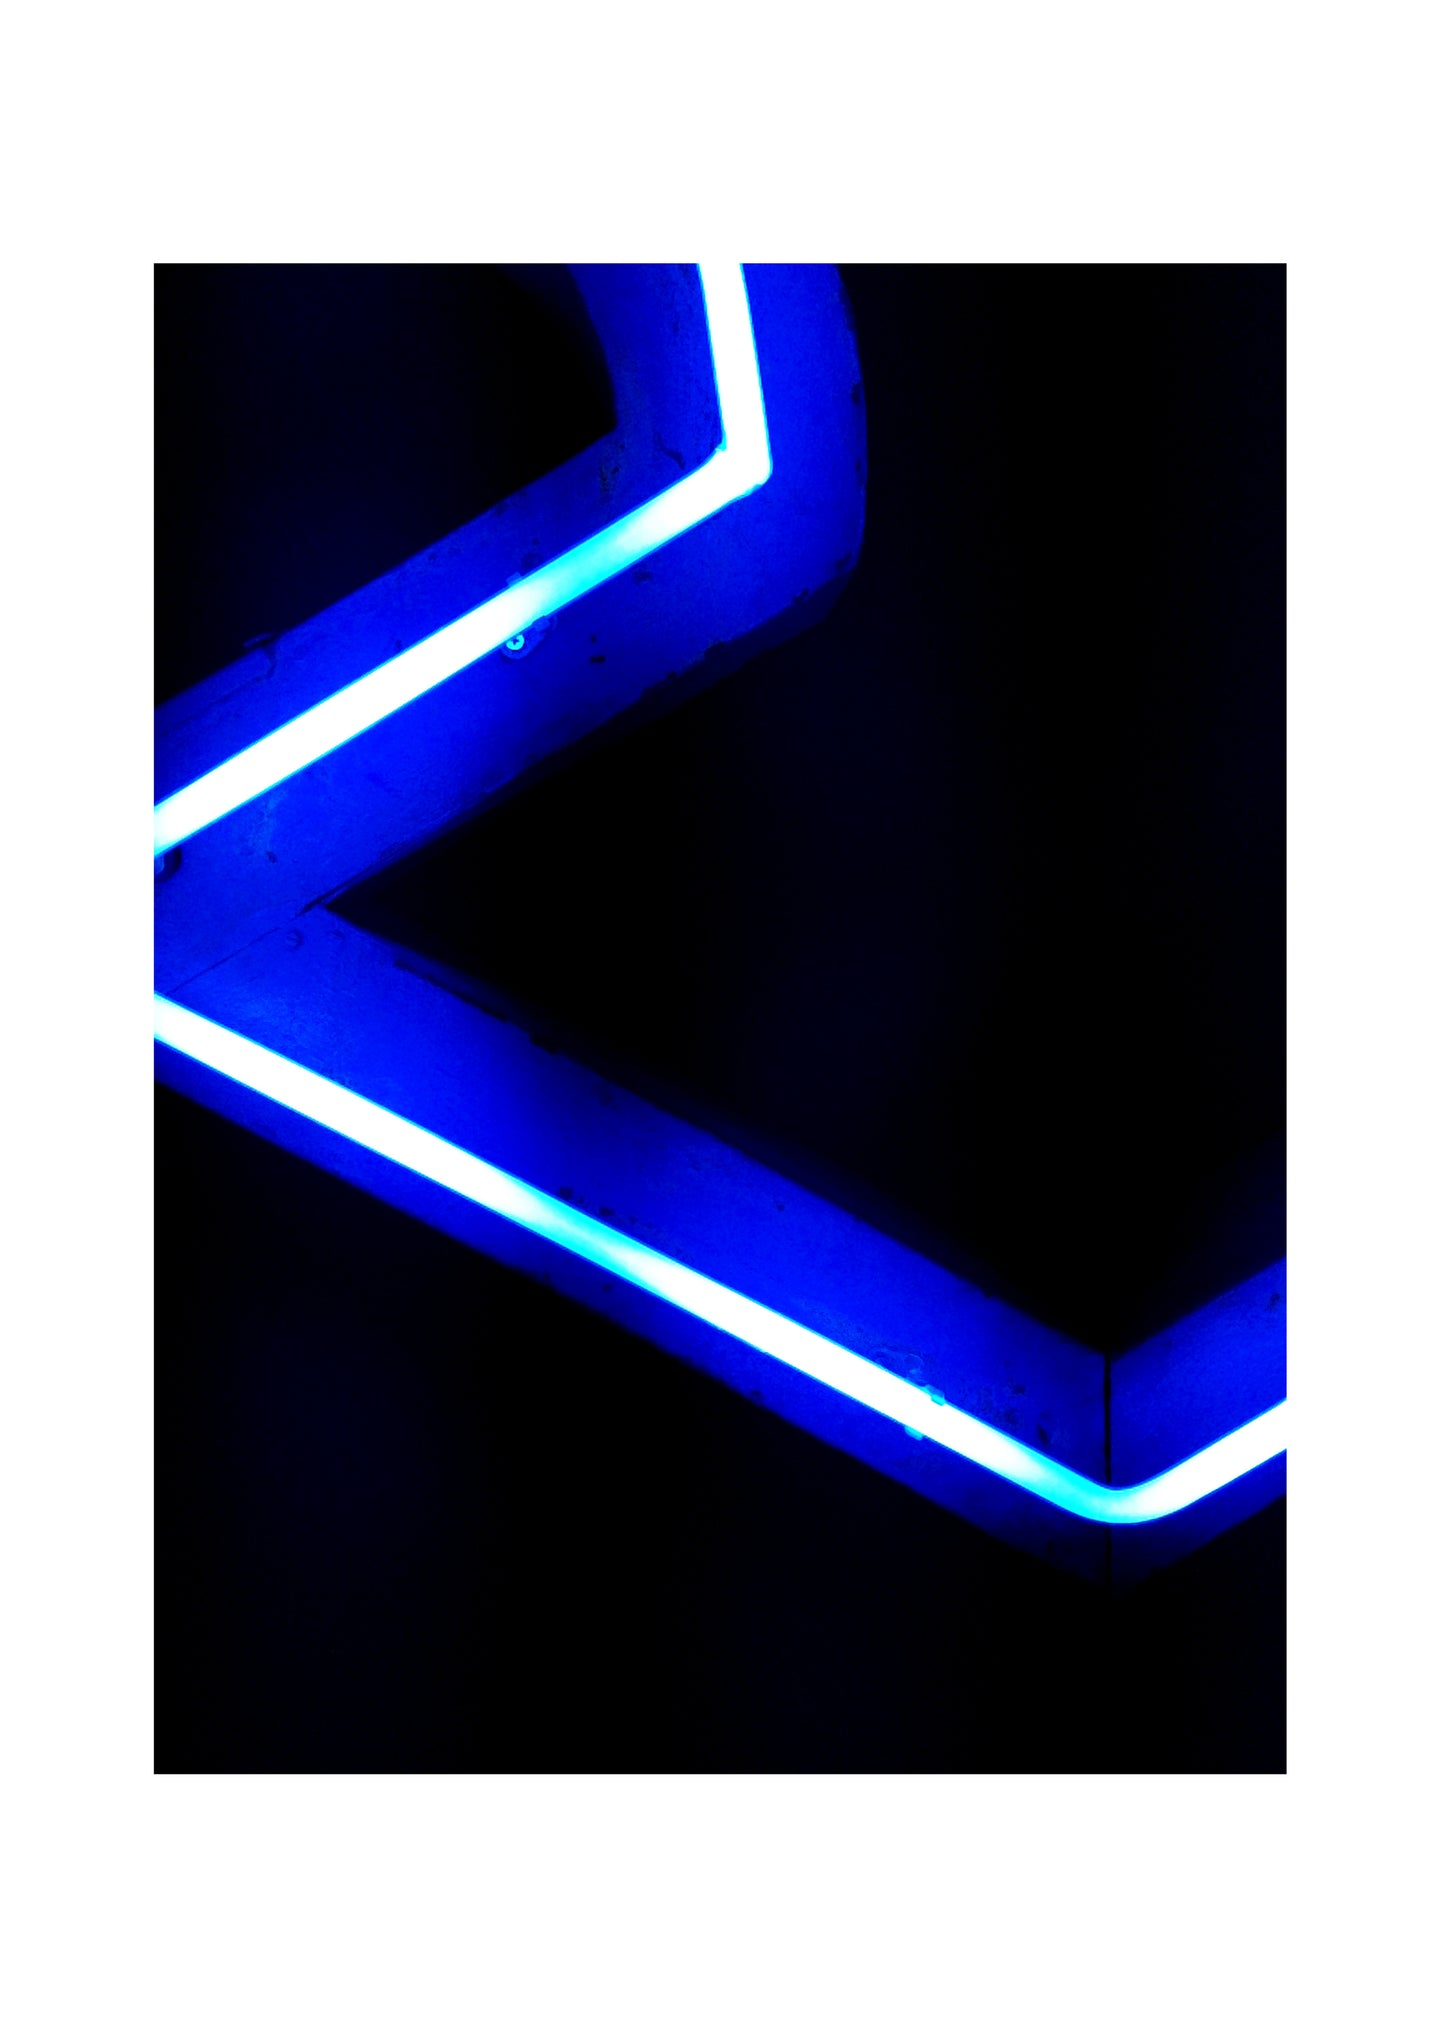 'Electric 1' Limited Edition Giclée Neon Print by Stephen Pick